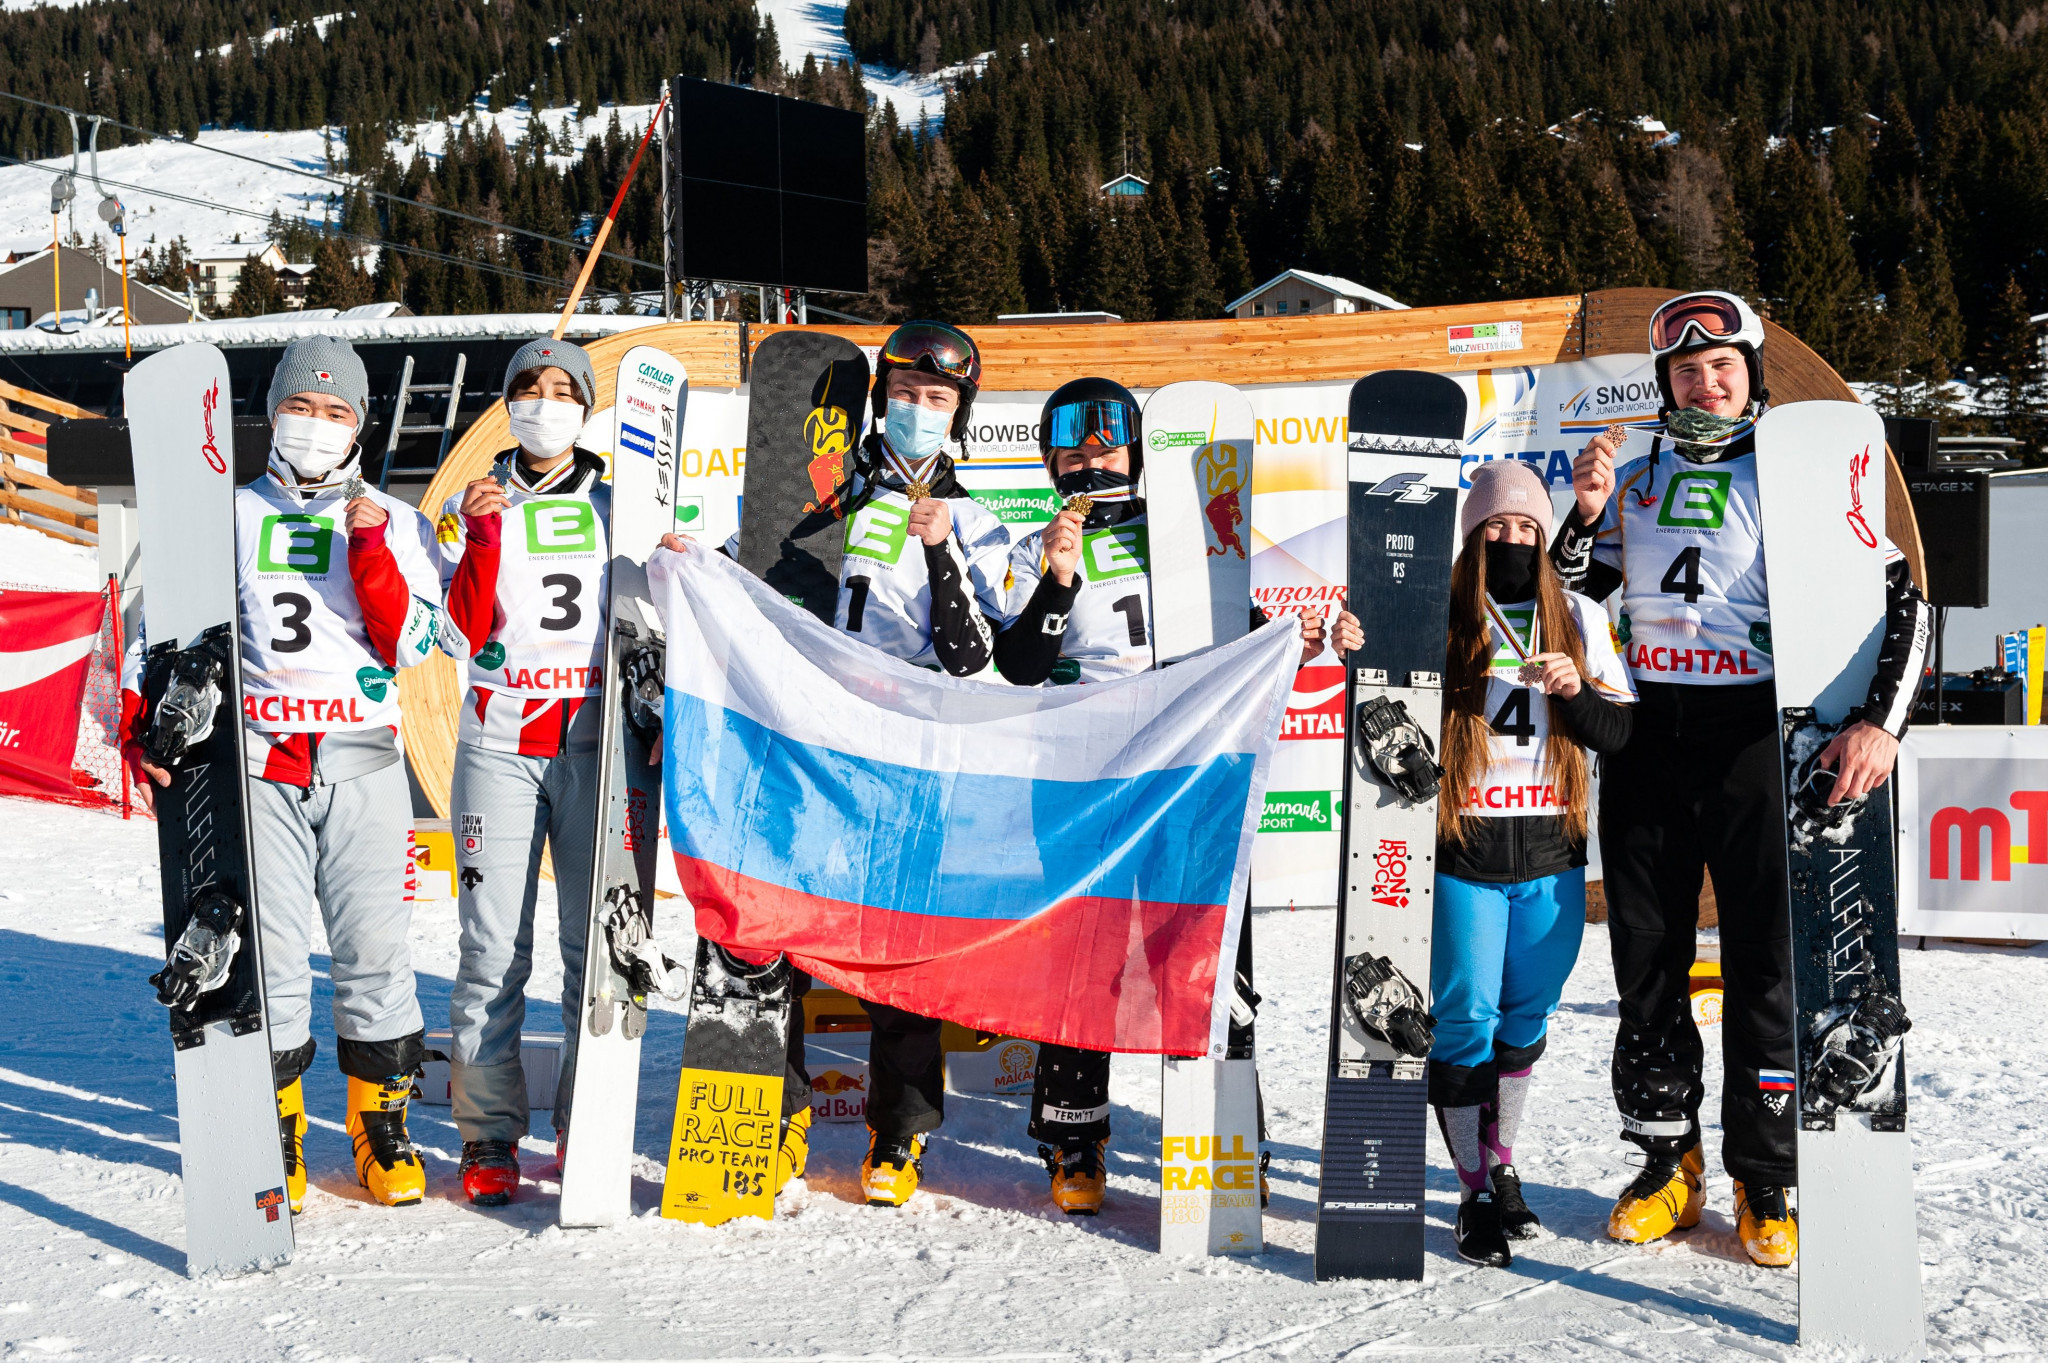 Russia perform clean sweep at FIS Snowboard Alpine Junior World Championships